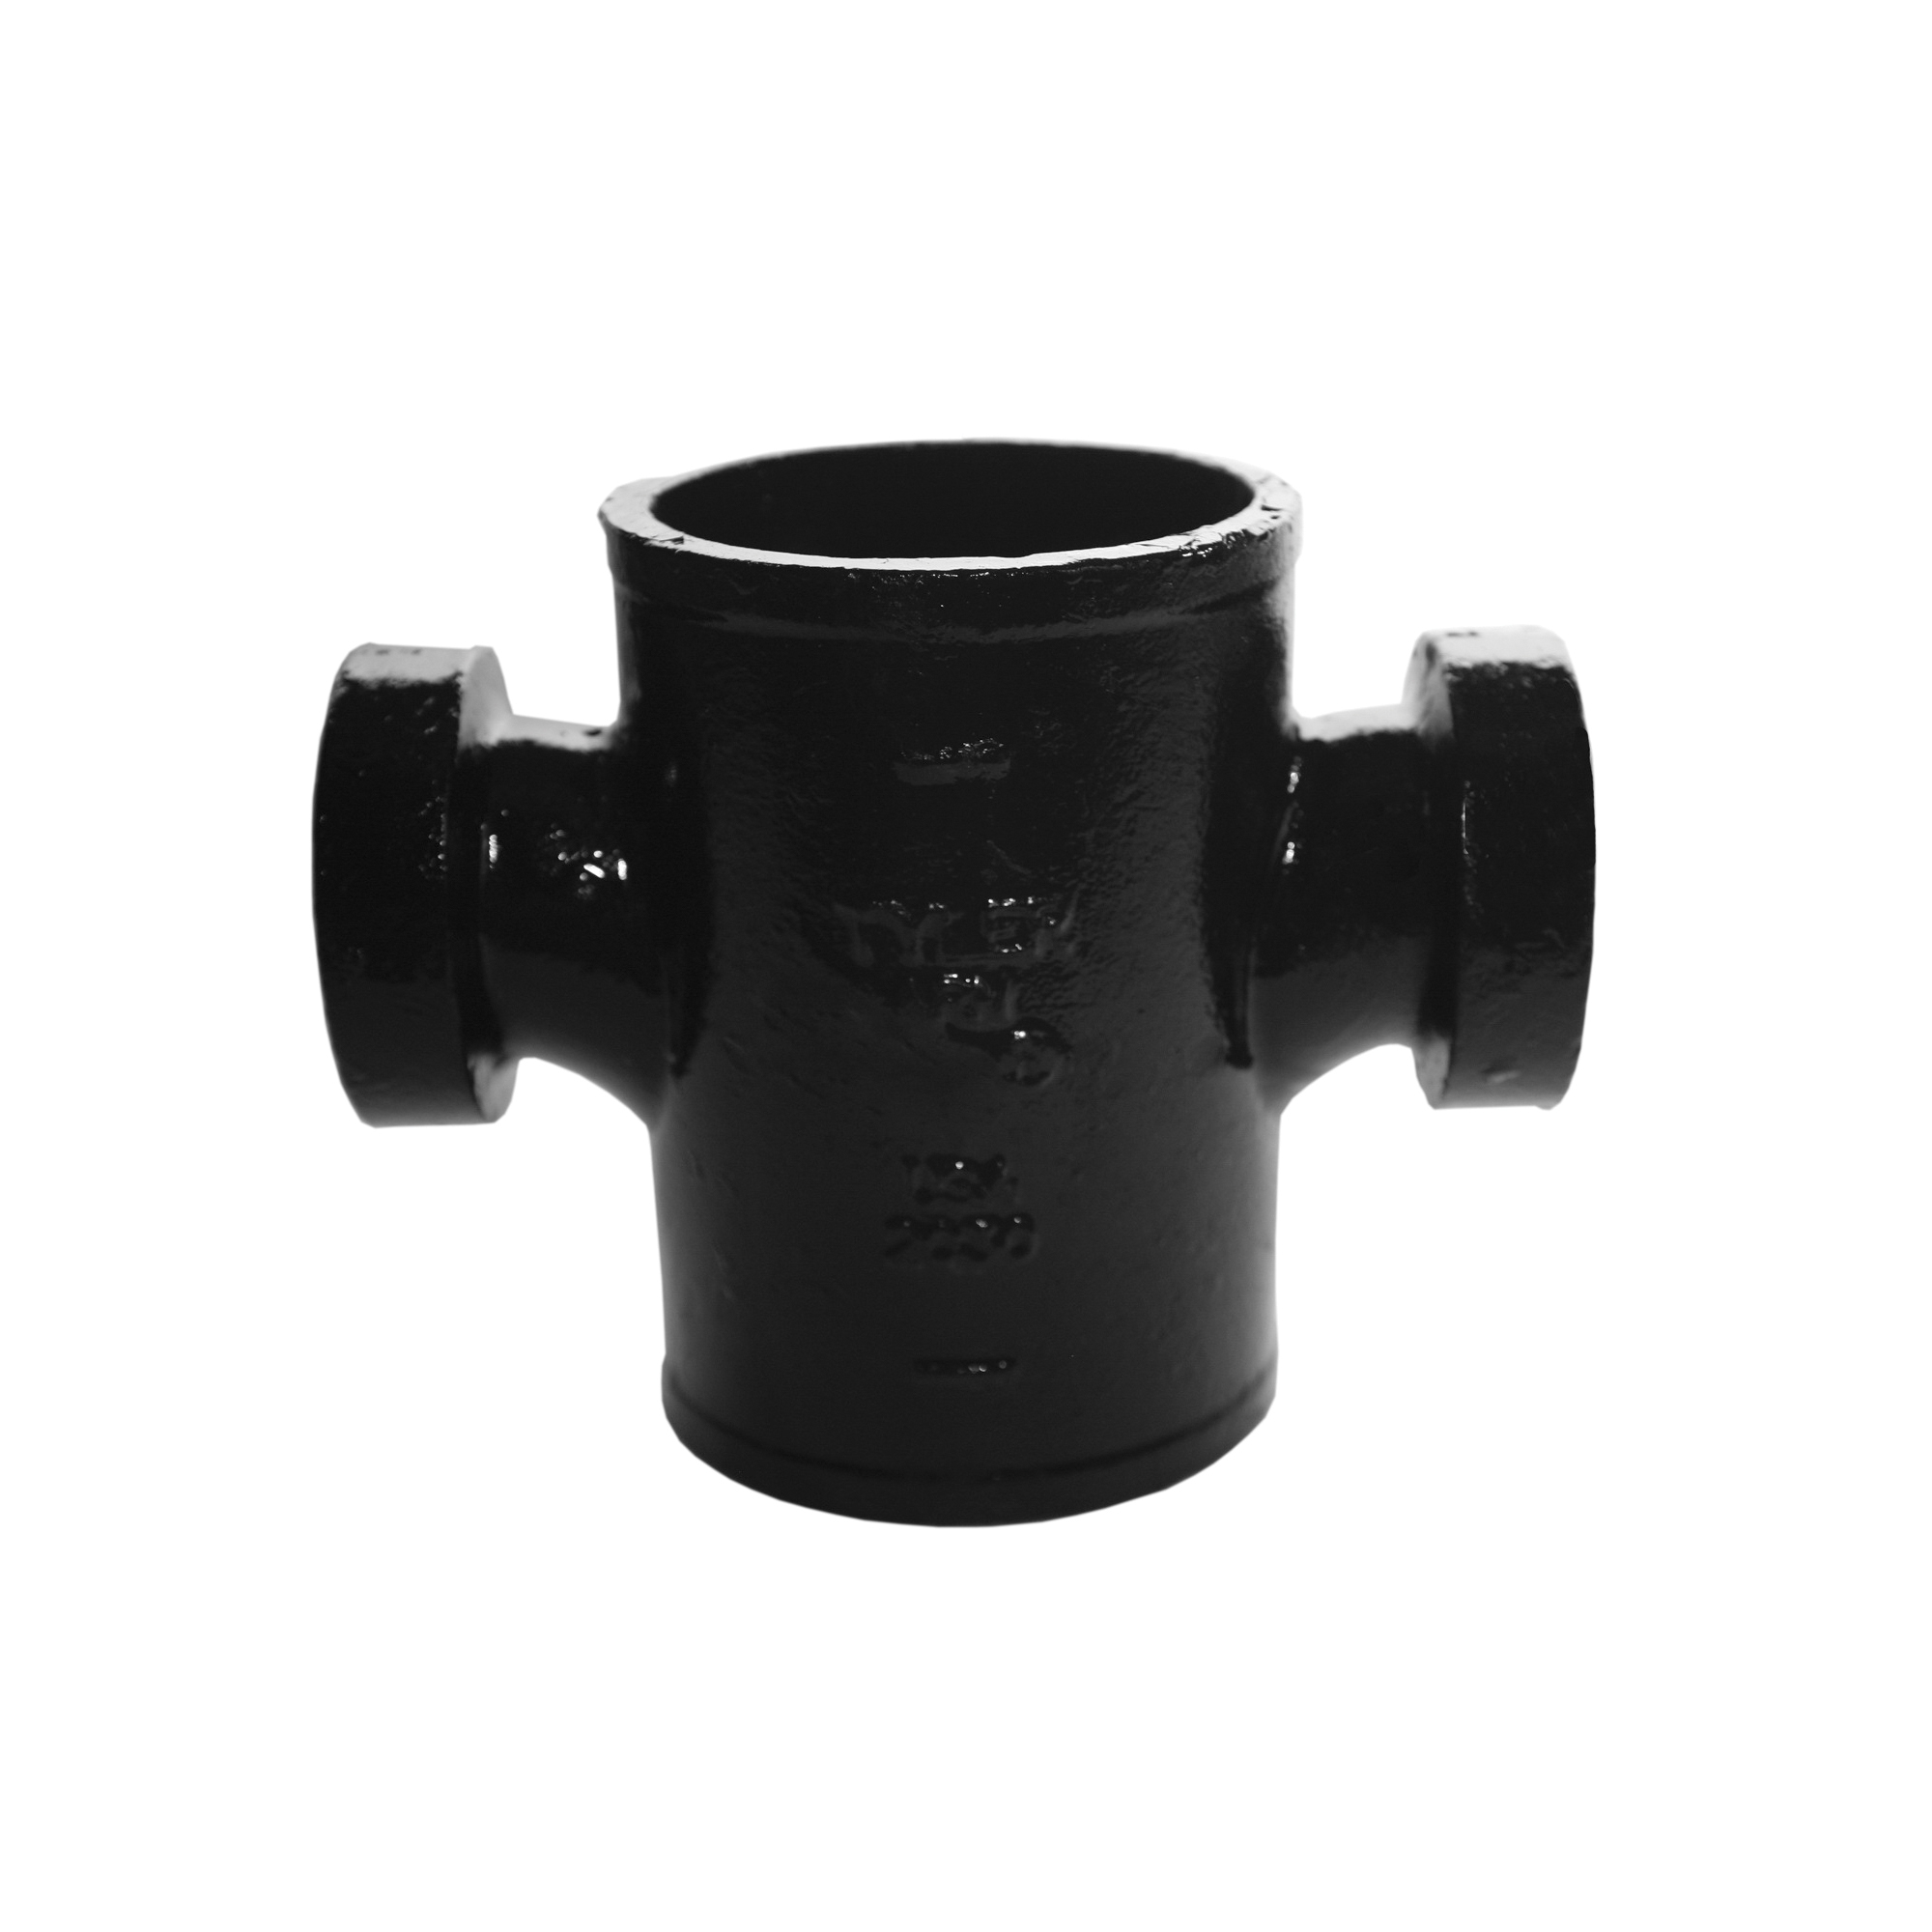 Tyler Pipe 009290 Sanitary Tapped Cross, 2 in, No Hub, Cast Iron, Domestic